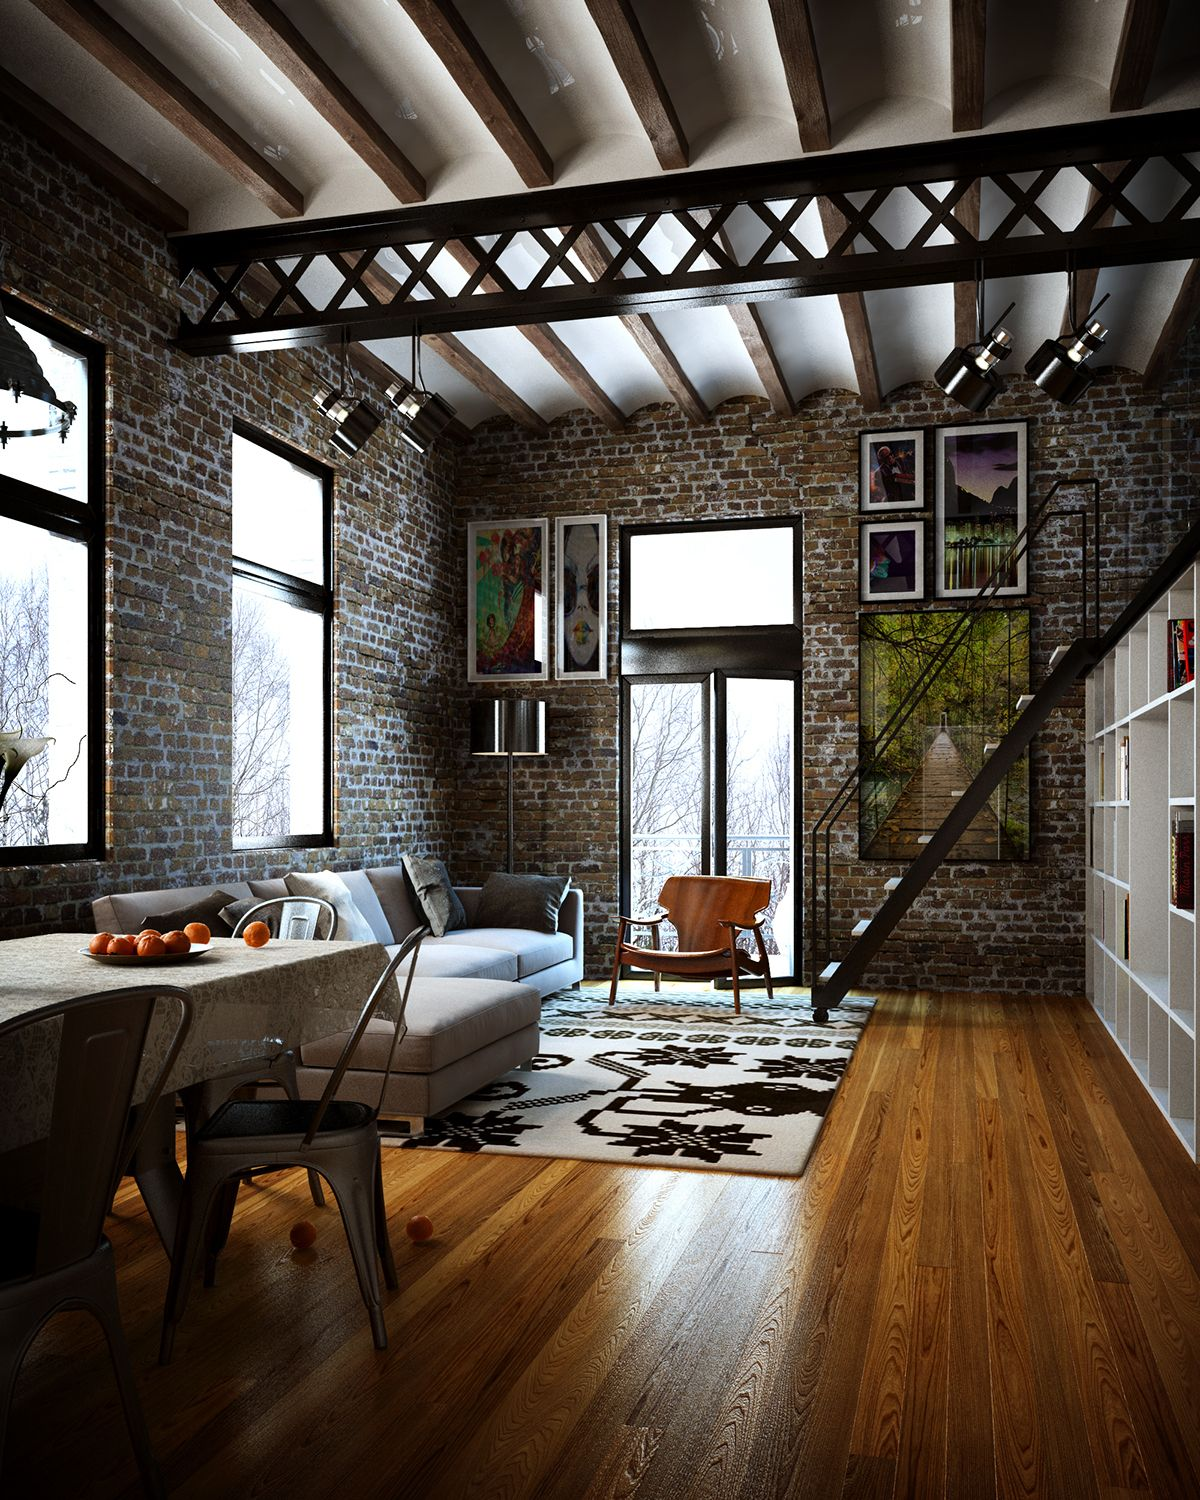 Loft Style.3D Max, Vray, Photoshop.Reference: http://www.archdaily ...